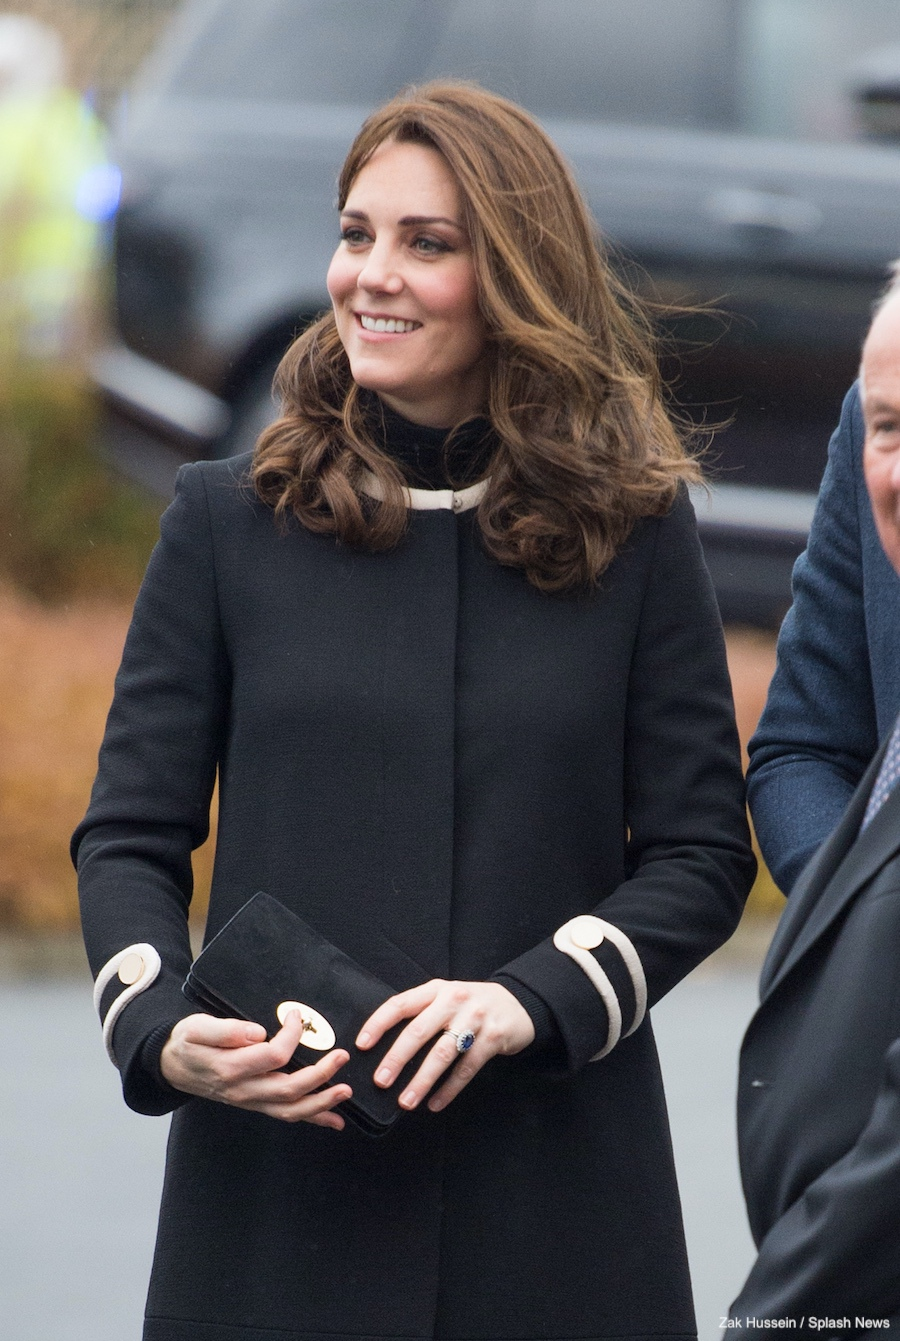 Kate Middleton wearing the Goat Washington Coat in Birmingham, England